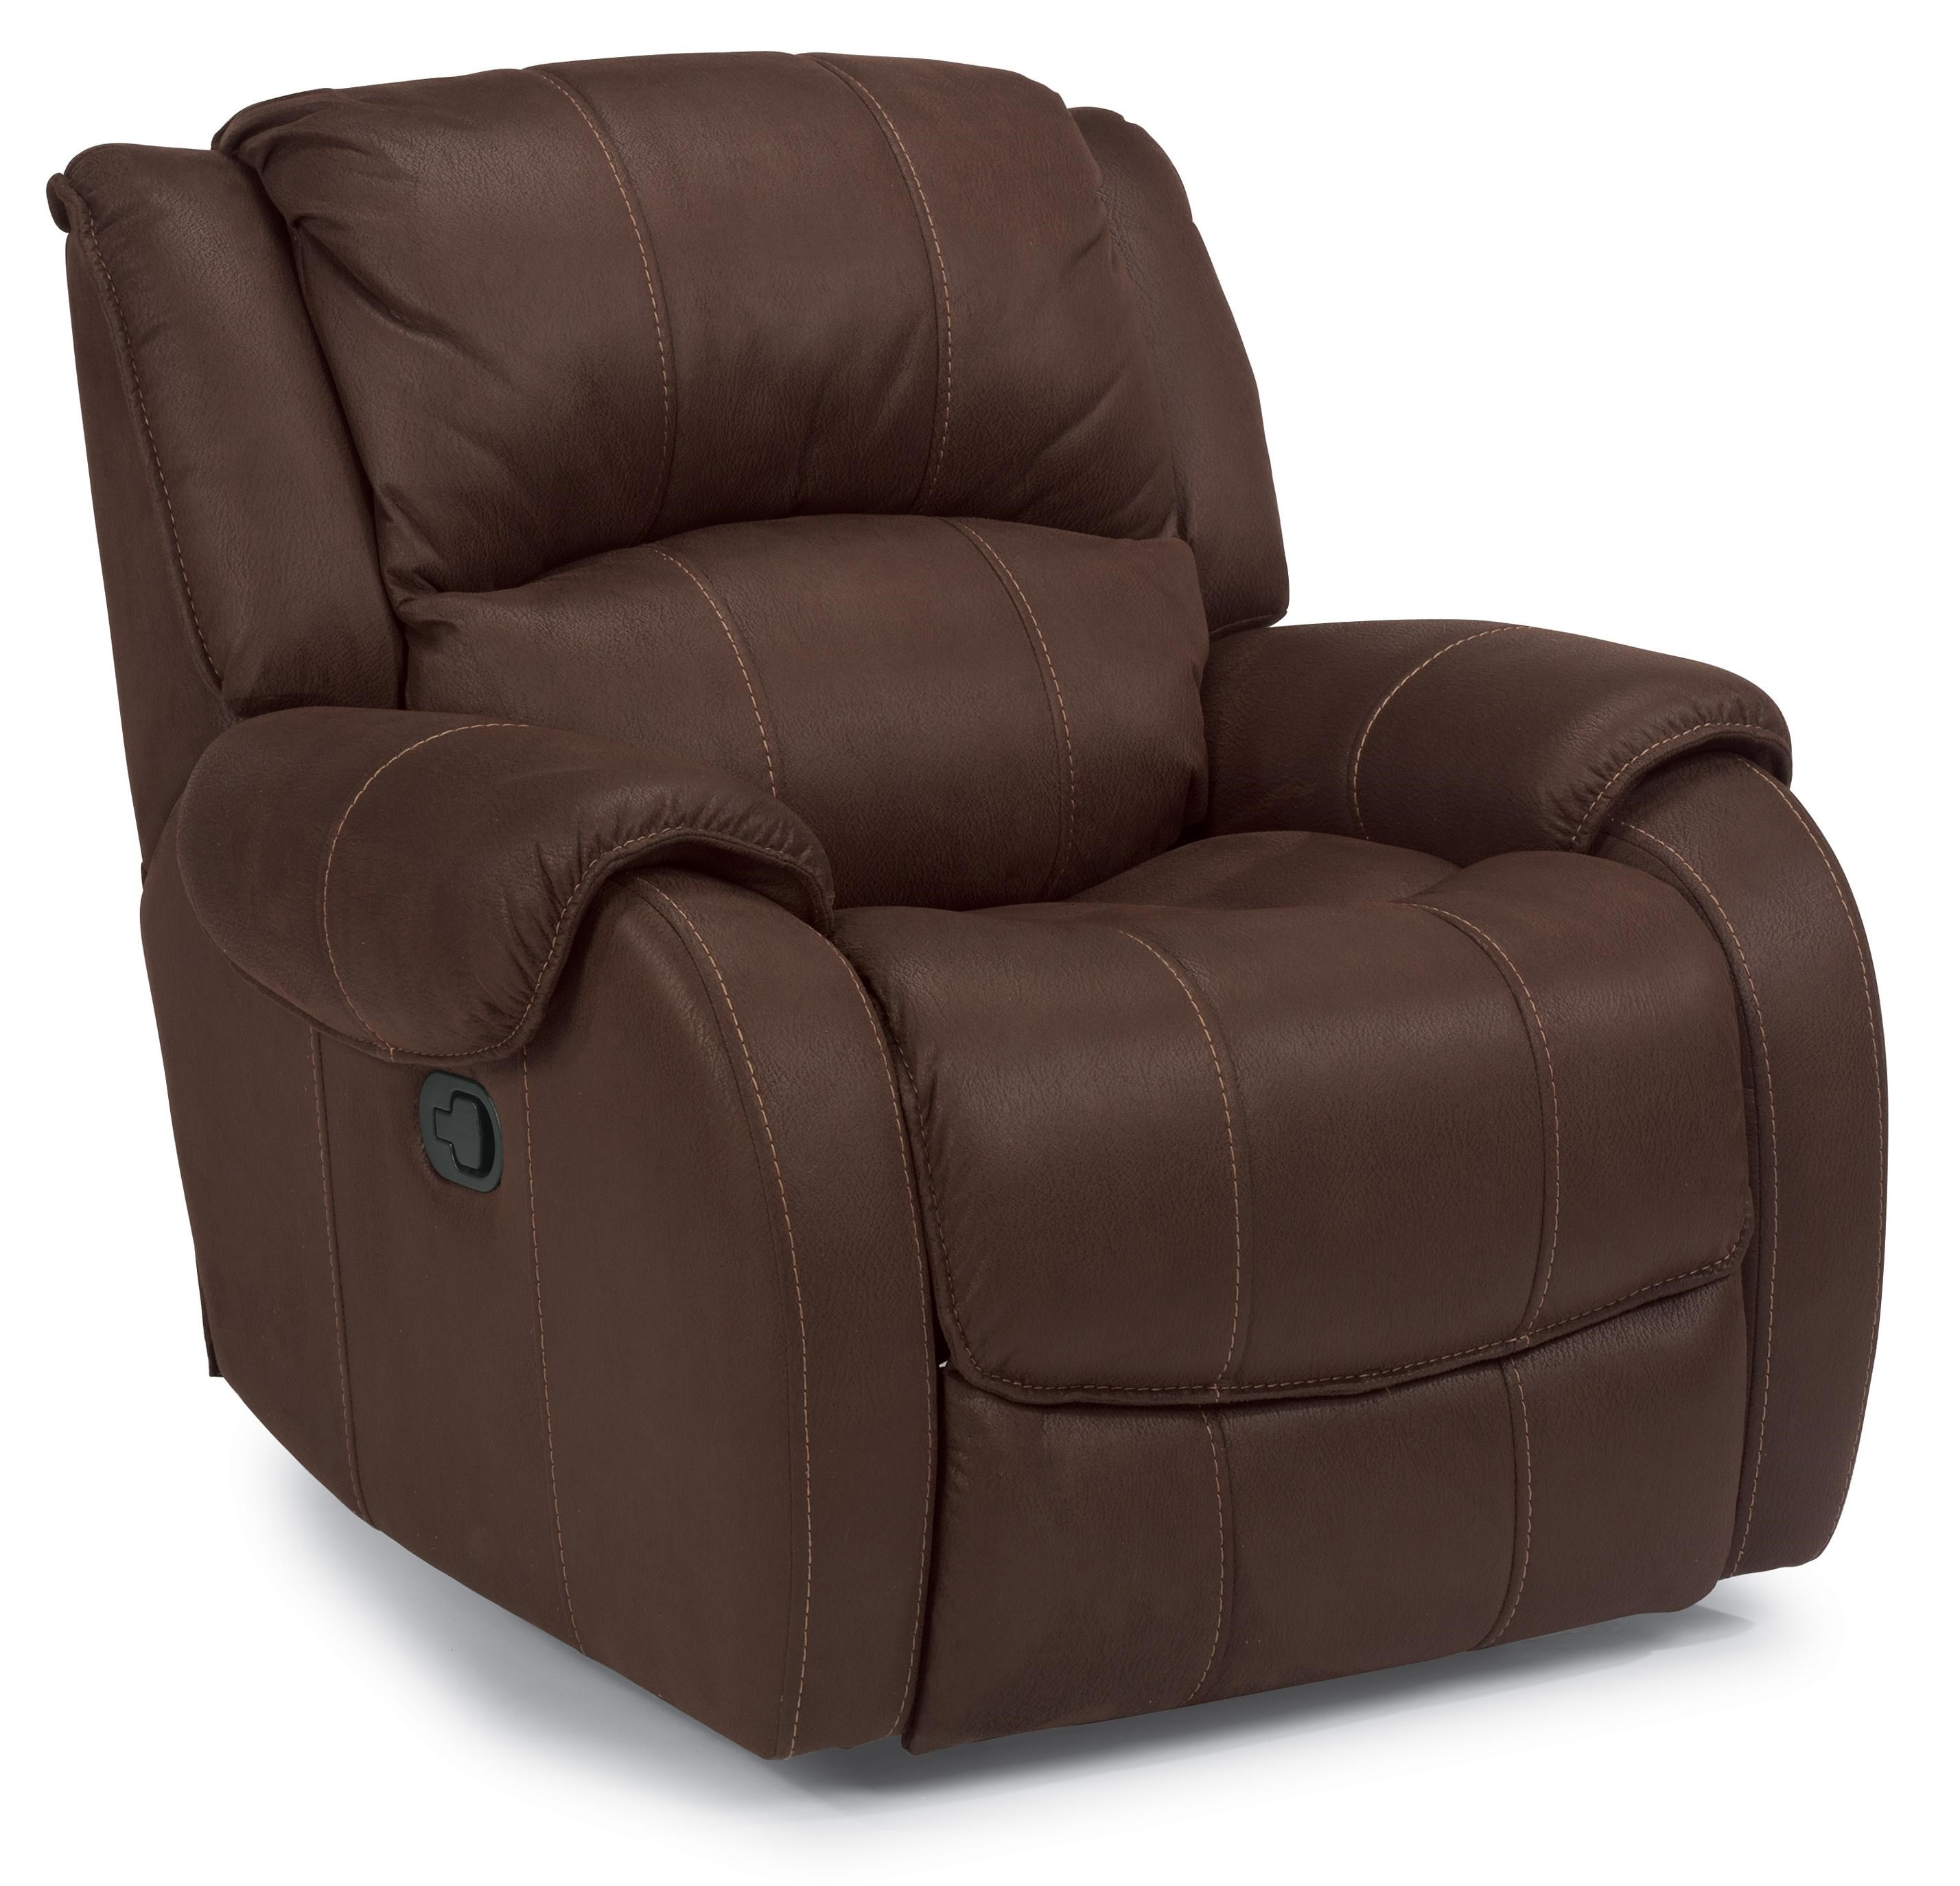 Flexsteel Latitudes -Pure Comfort Power Motion Recliner with Pillow Top Arms - Furniture and ...